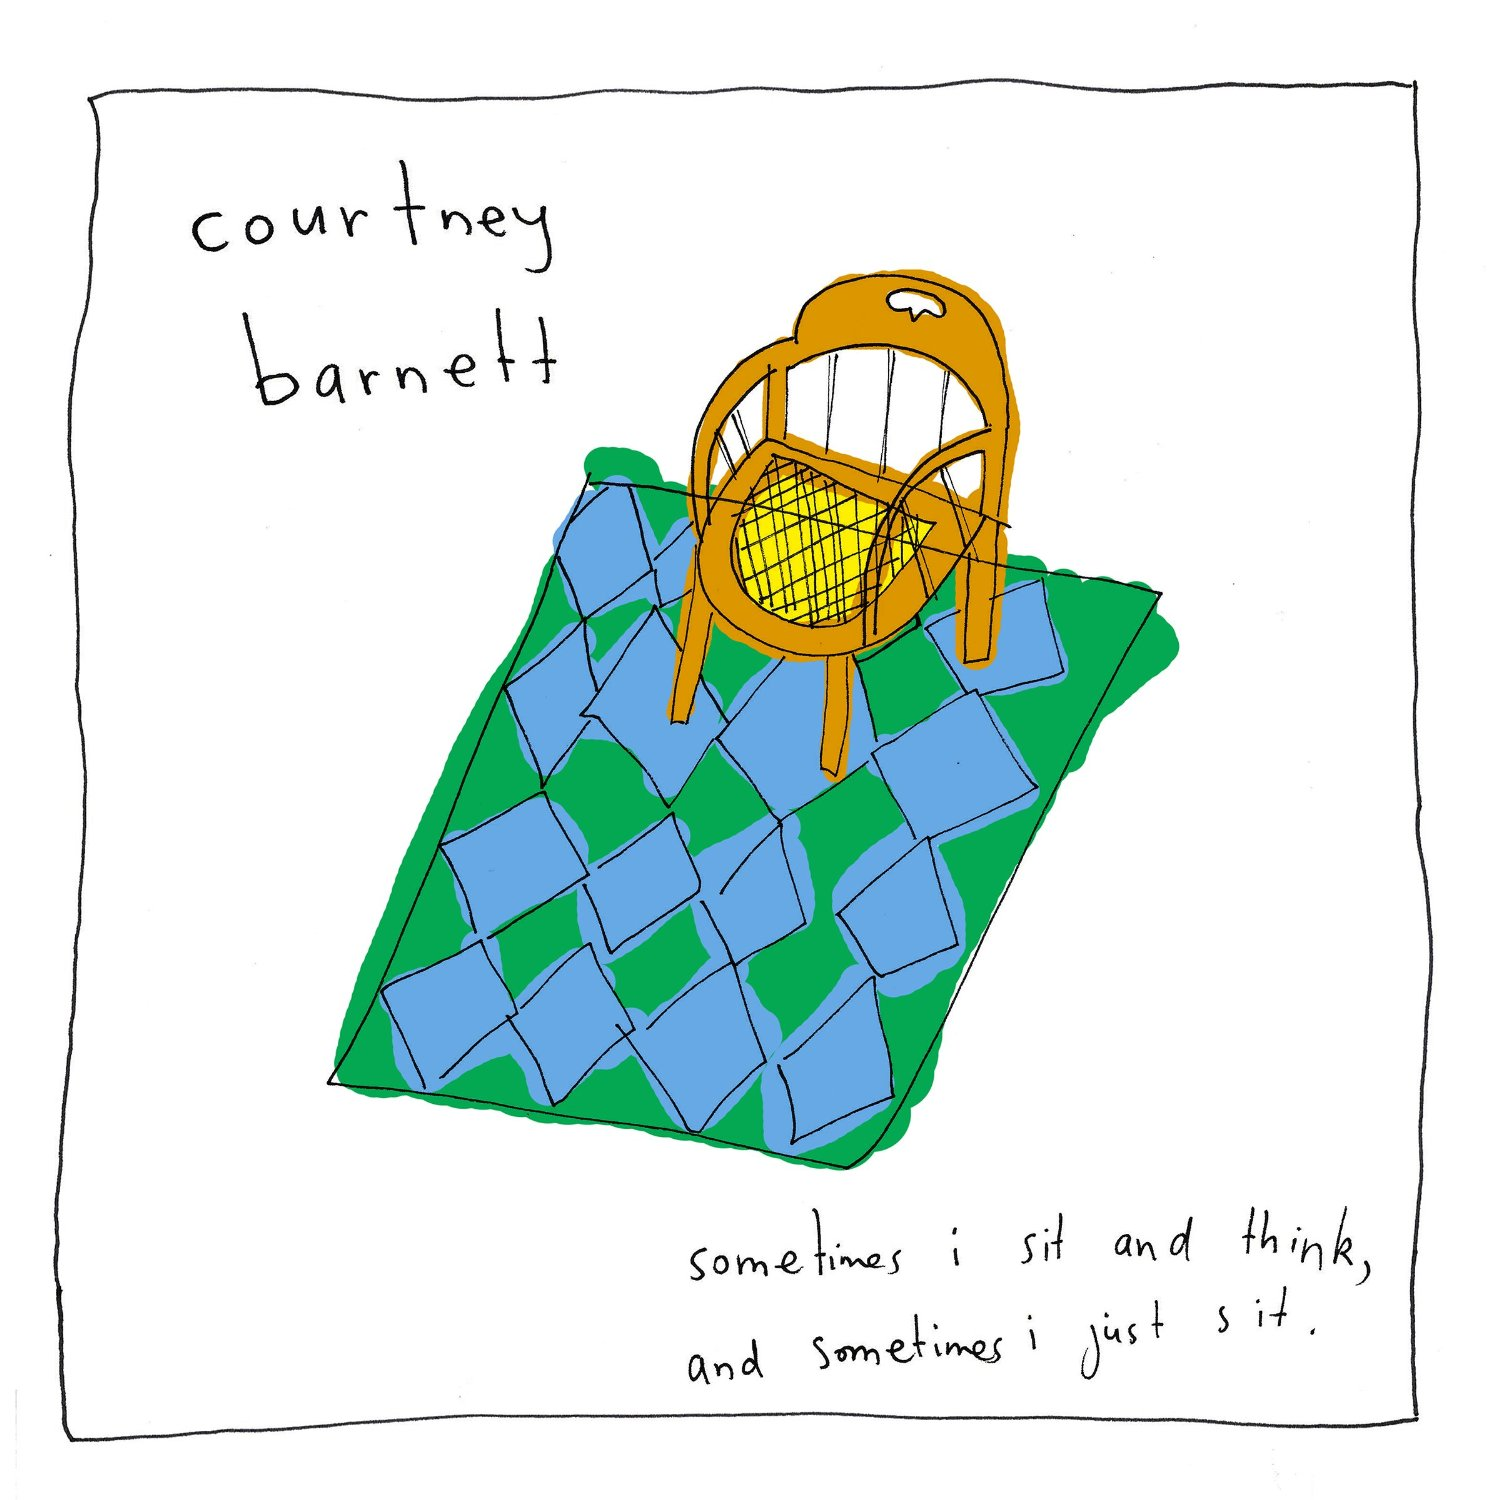 courtney barnett sometimes i sit